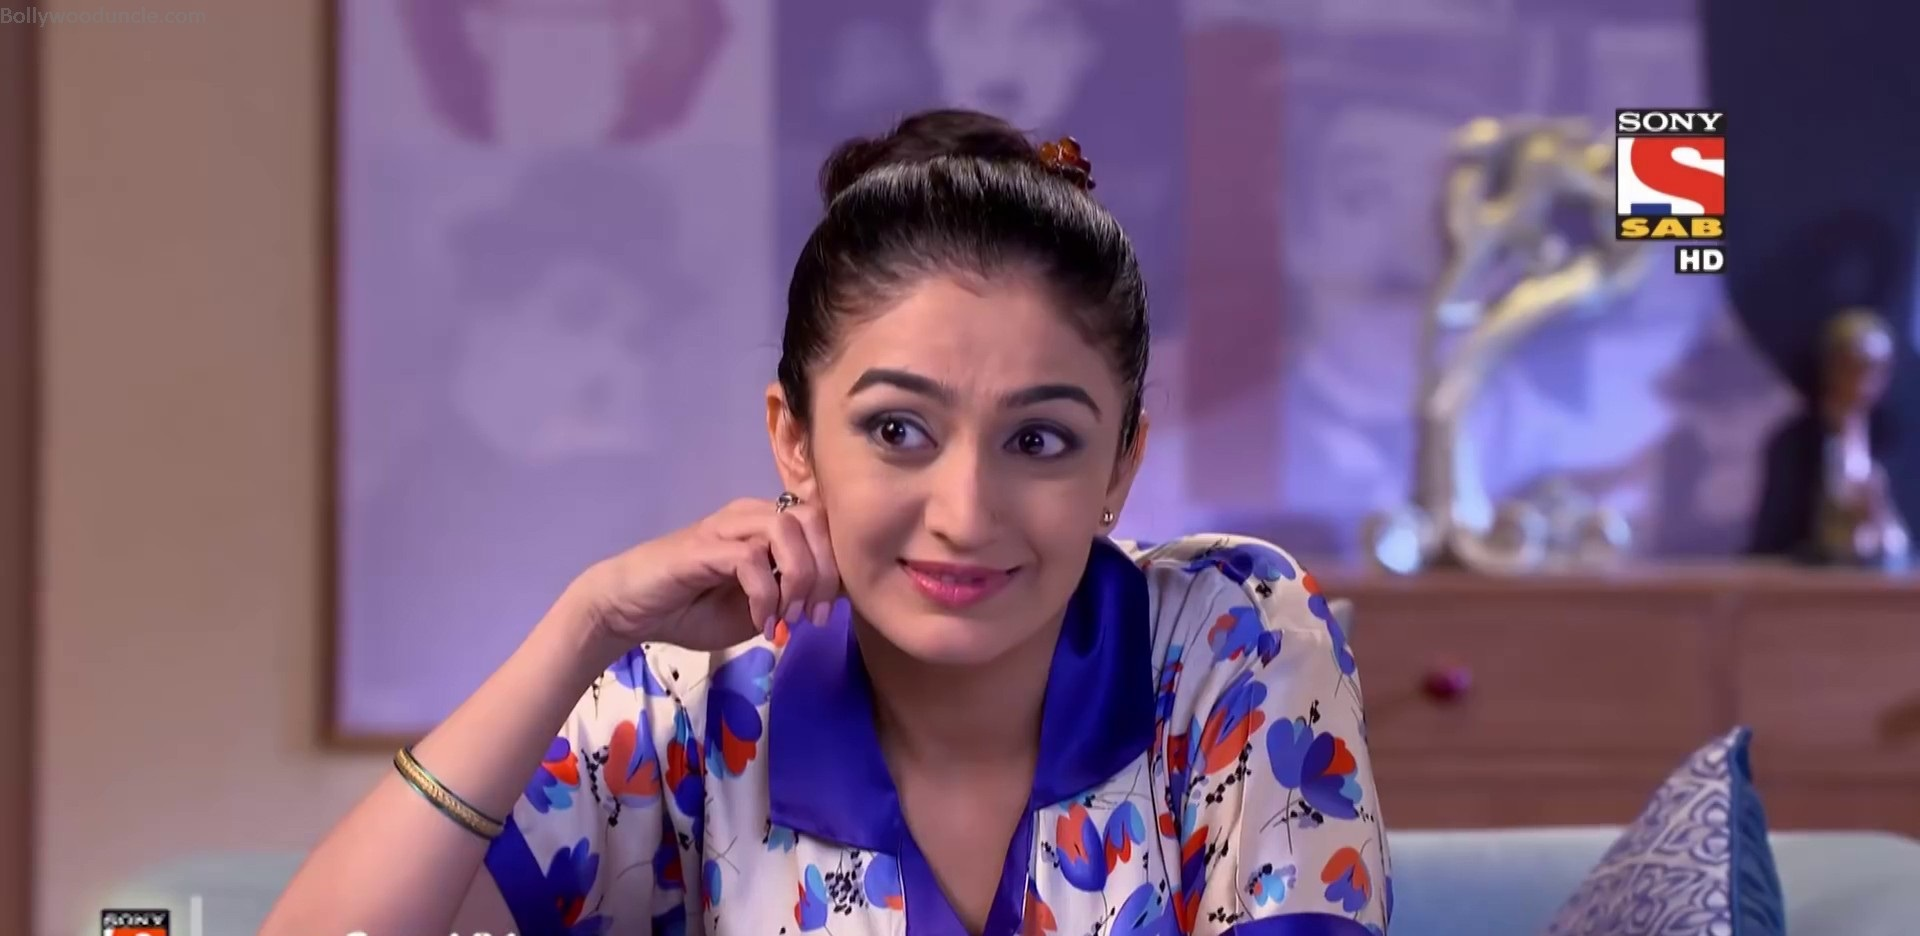 Neha Mehta – Biography, Personal Details, Career, and Net Worth